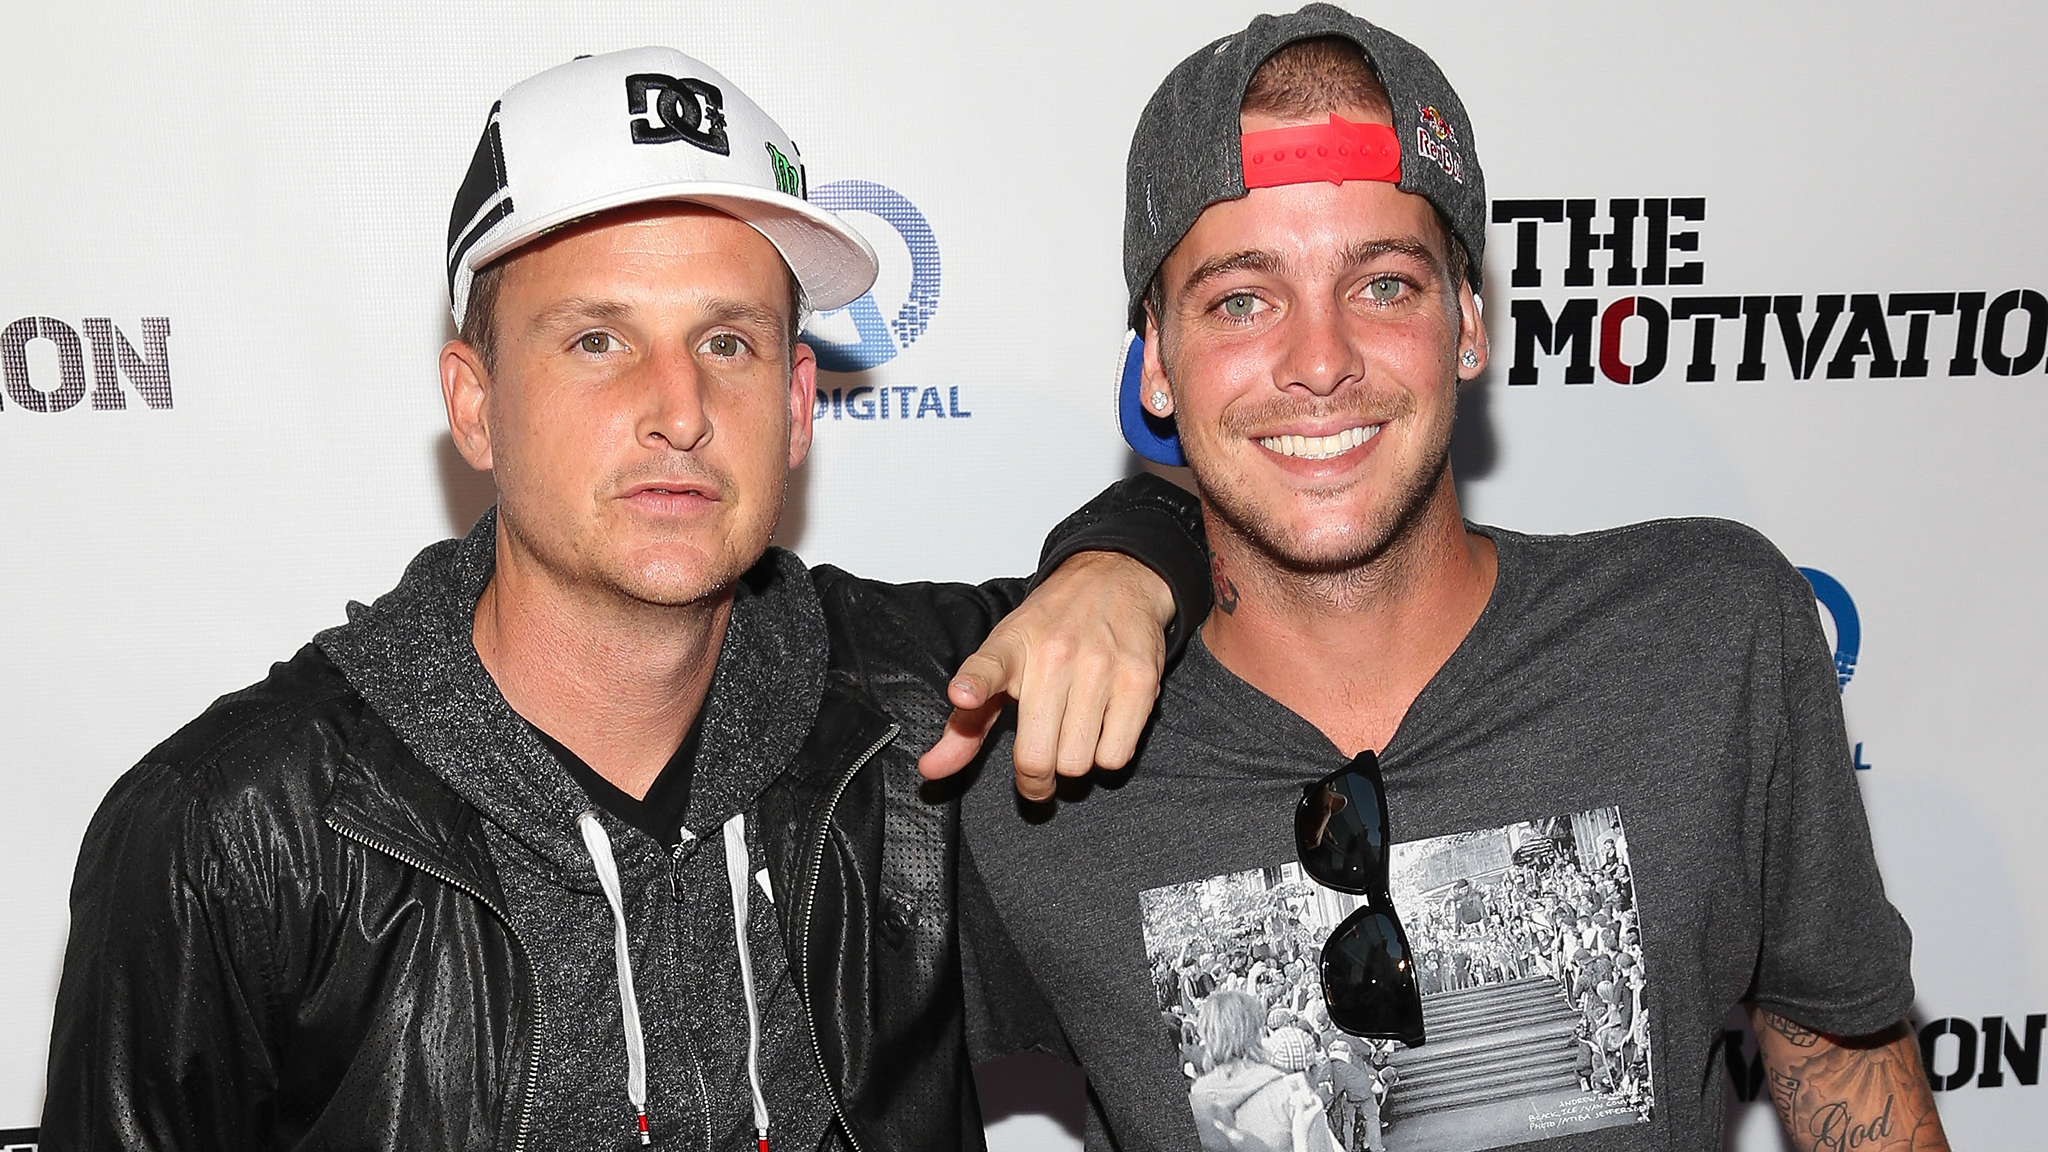 rob dyrdek jeansrob dyrdek instagram, rob dyrdek net worth, rob dyrdek dc, rob dyrdek fantasy factory, rob dyrdek factory, rob dyrdek jeans, rob dyrdek tattoo, rob dyrdek hoodies, rob dyrdek wife, rob dyrdek skateboarding, rob dyrdek sponsors, rob dyrdek record label, rob dyrdek sister, rob dyrdek youtube, rob dyrdek, rob dyrdek girlfriend, rob dyrdek proposal, rob dyrdek and chanel west coast, rob dyrdek wiki, rob dyrdek dc shoes